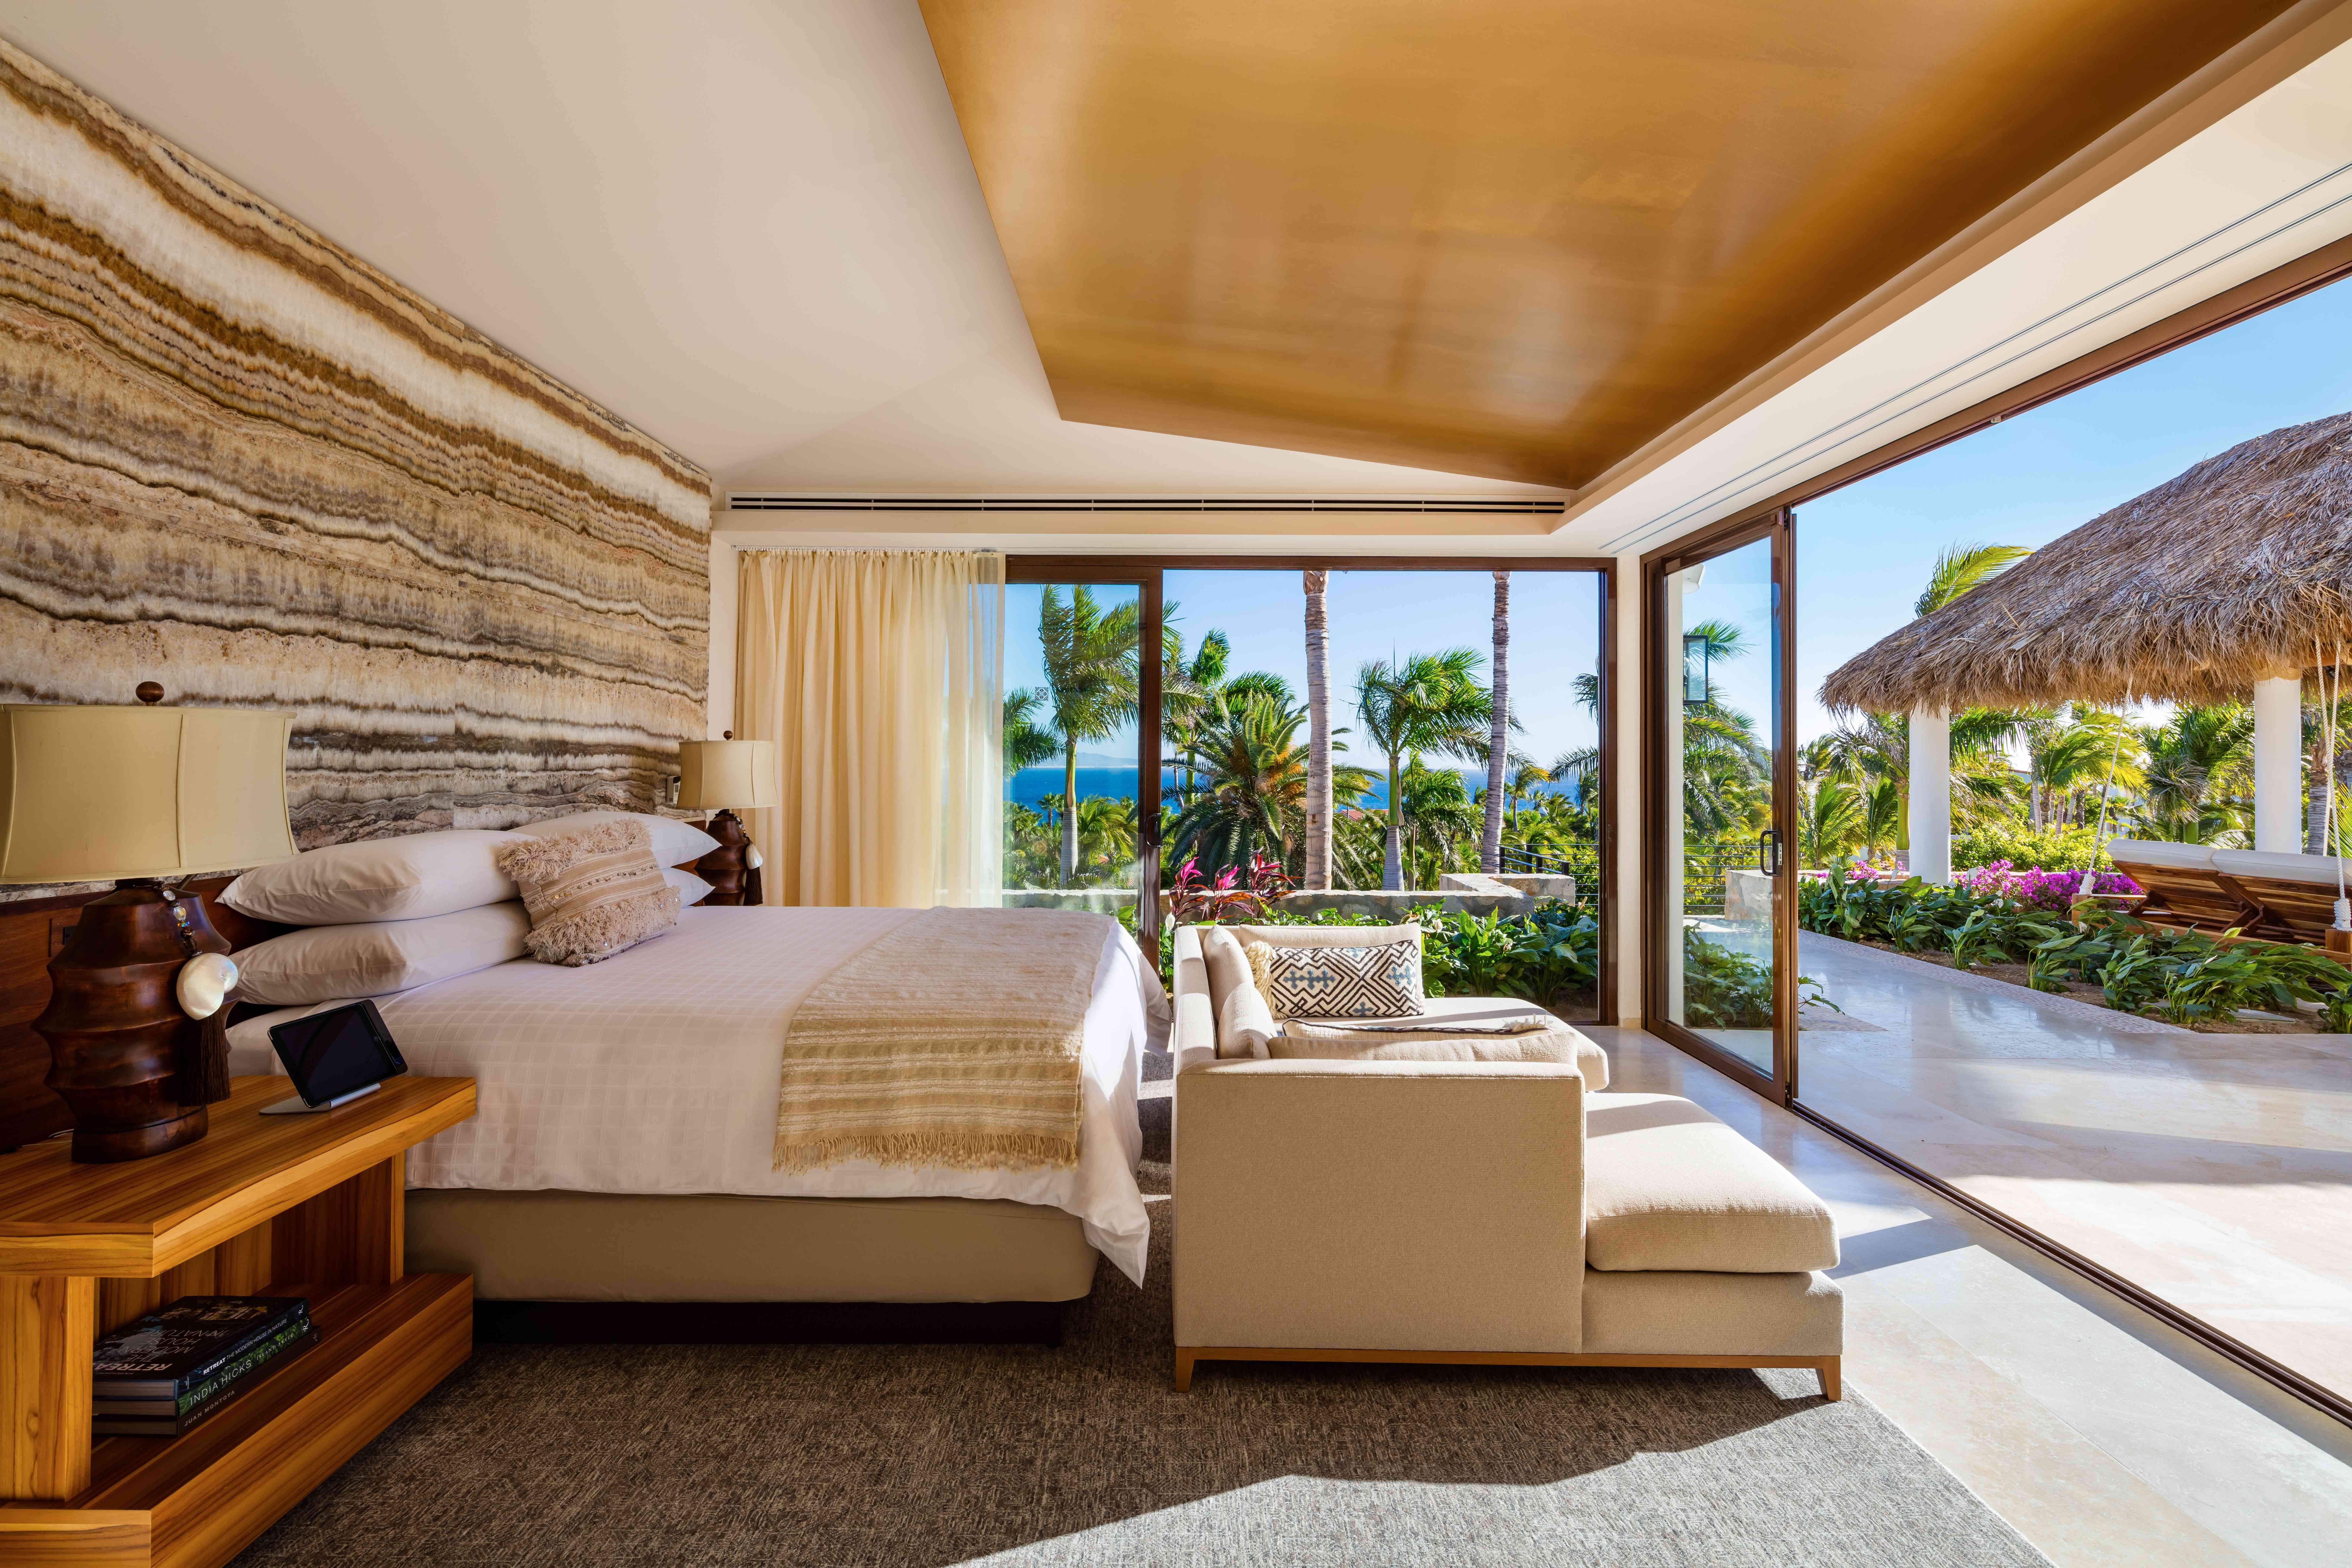 Villa One at One&Only Palmilla Mexico